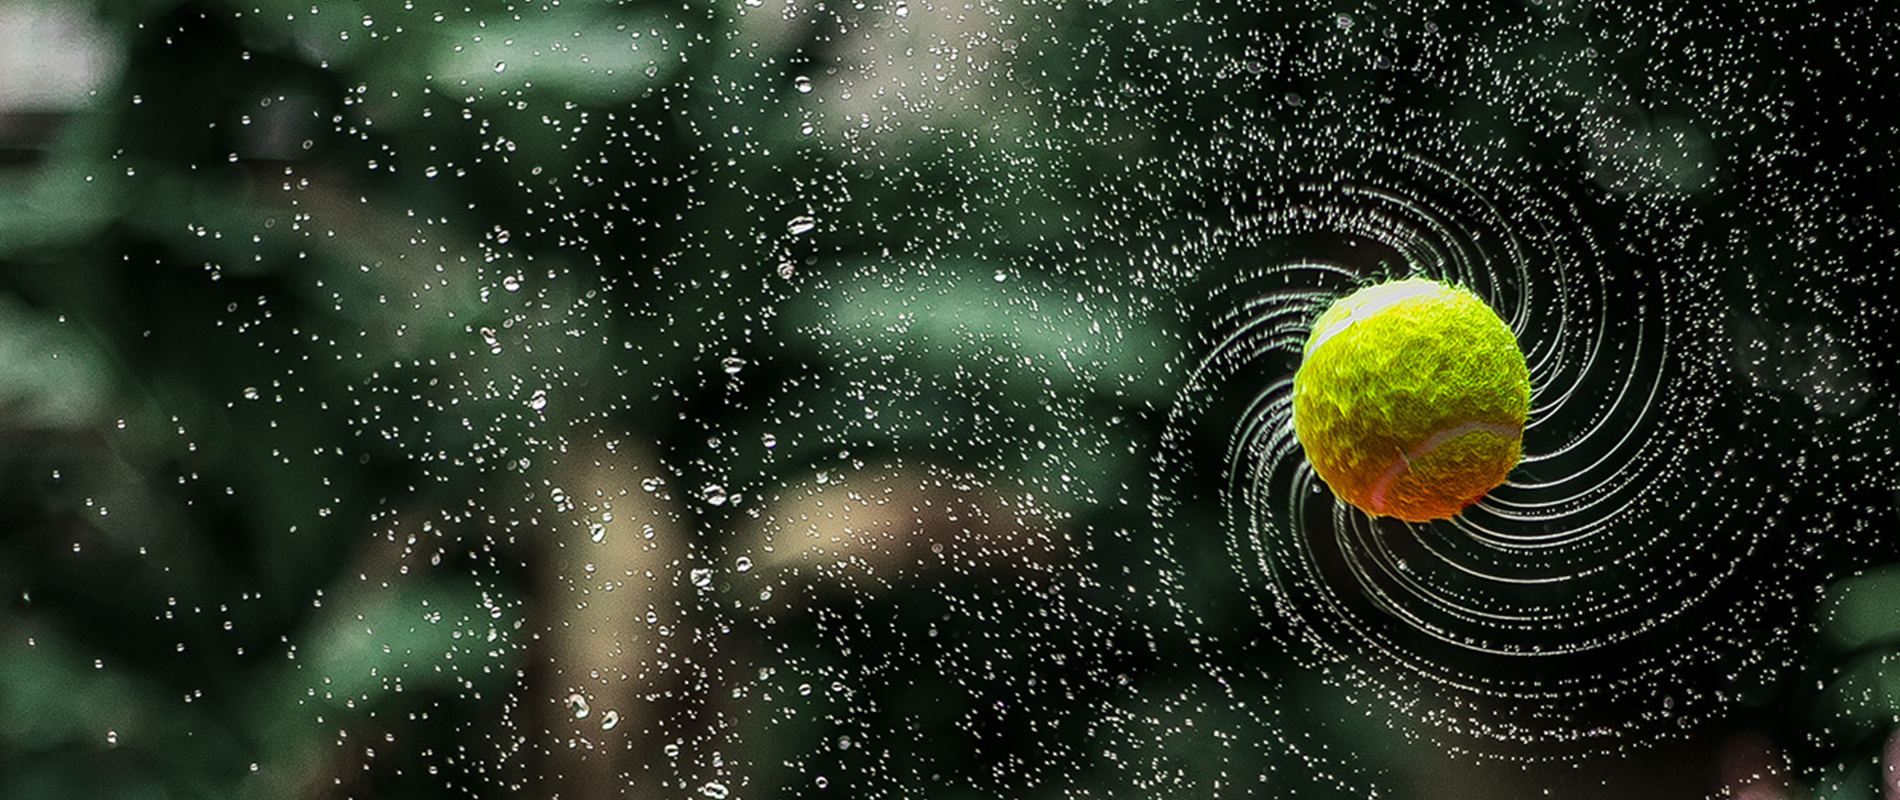 tennis_ball_galaxy_shutterstock_705613165_slider_1900x800